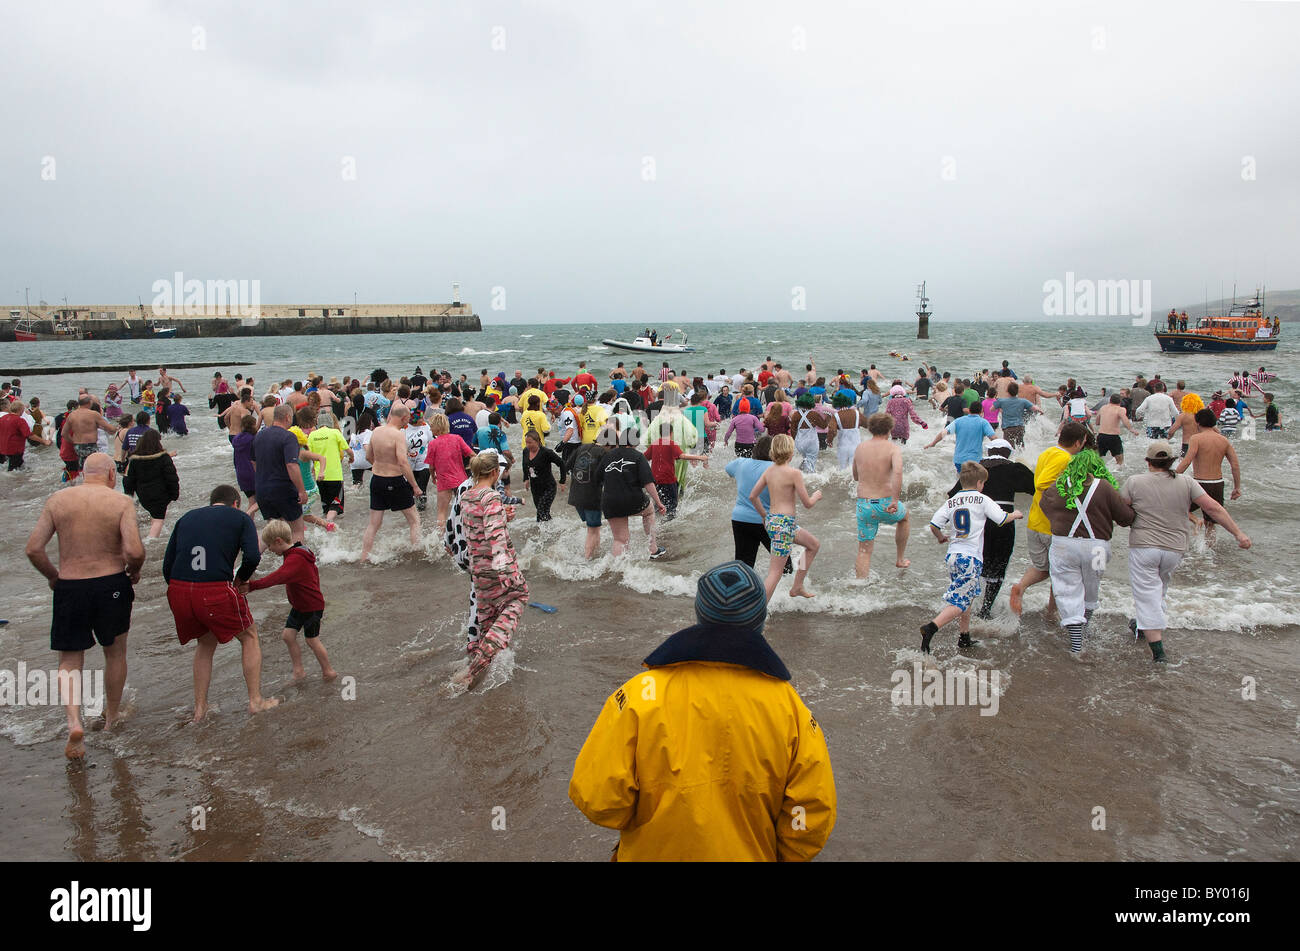 Hundreds of people run into the sea for annual new years day dip at Peel, Isle of Man Stock Photo